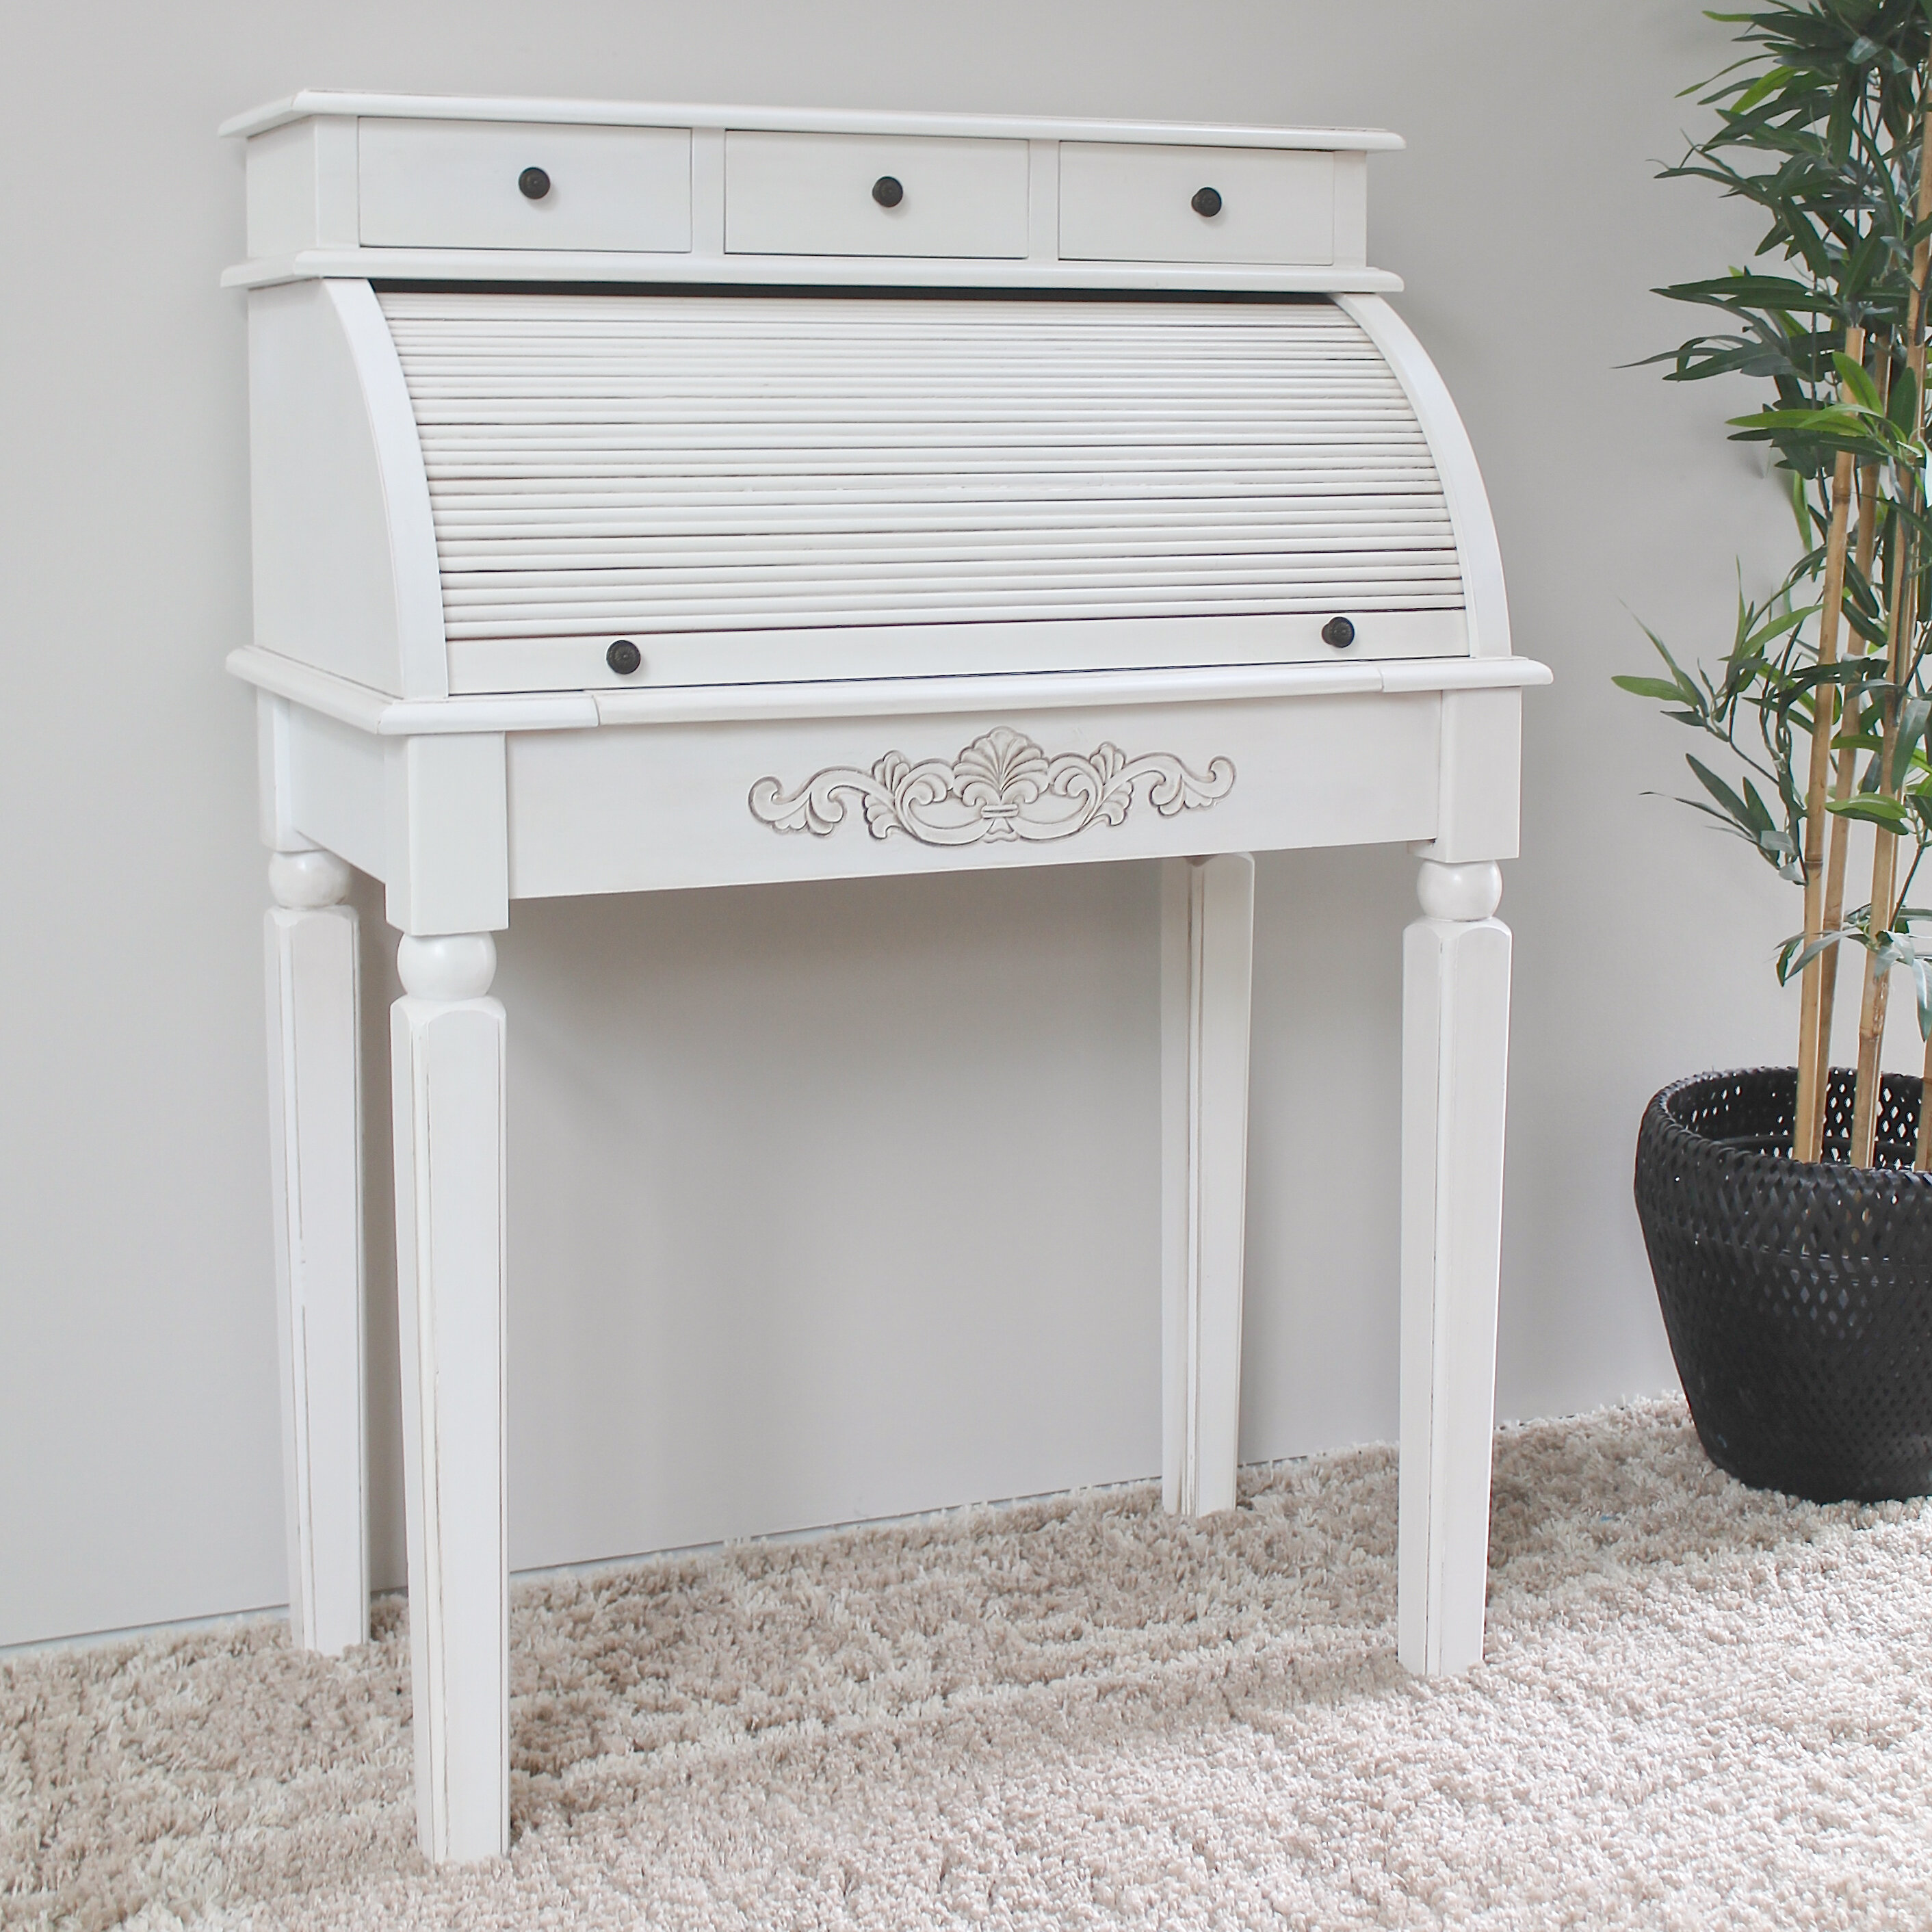 furniture plus ideas wells design secretary mg home in with as shapely